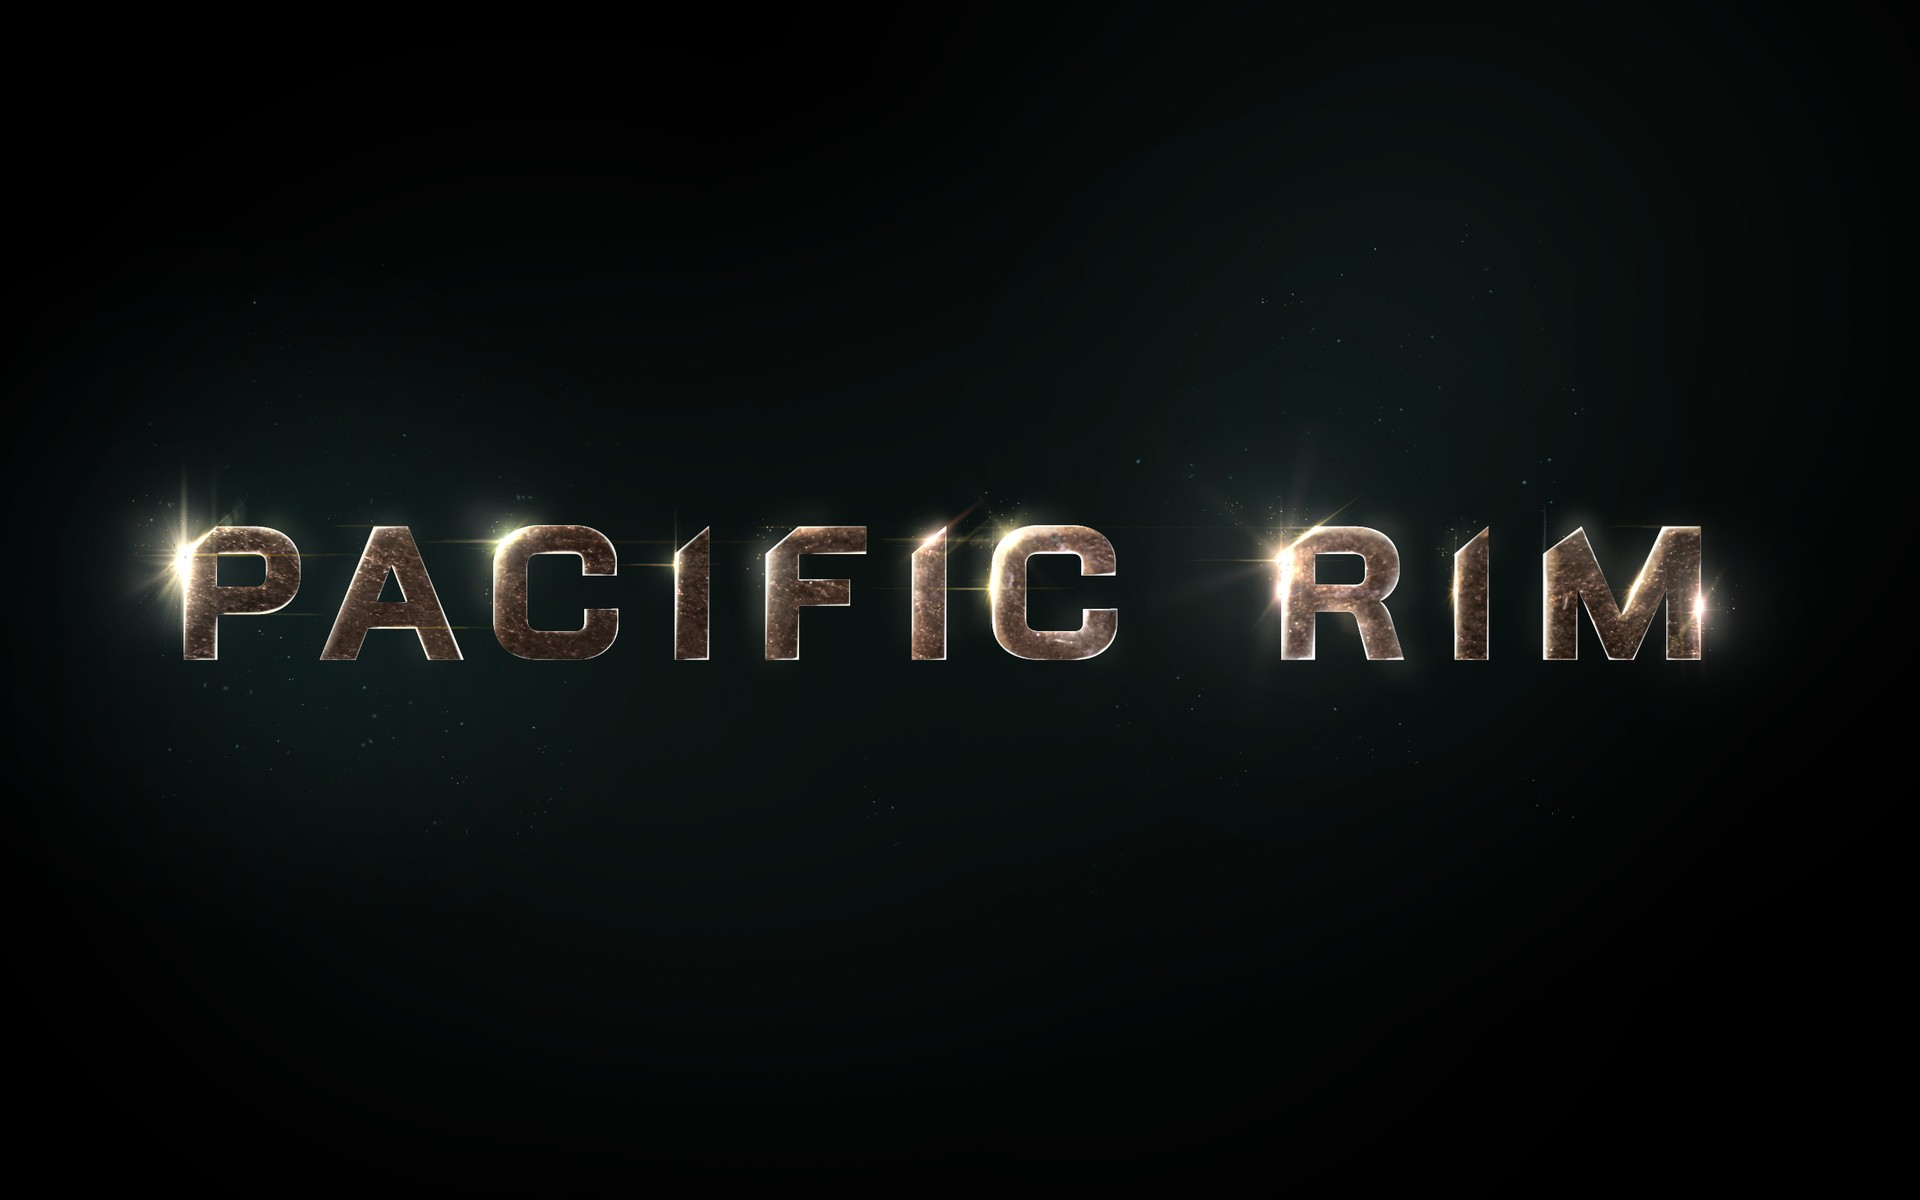 pacific rim logo wallpaper 22443